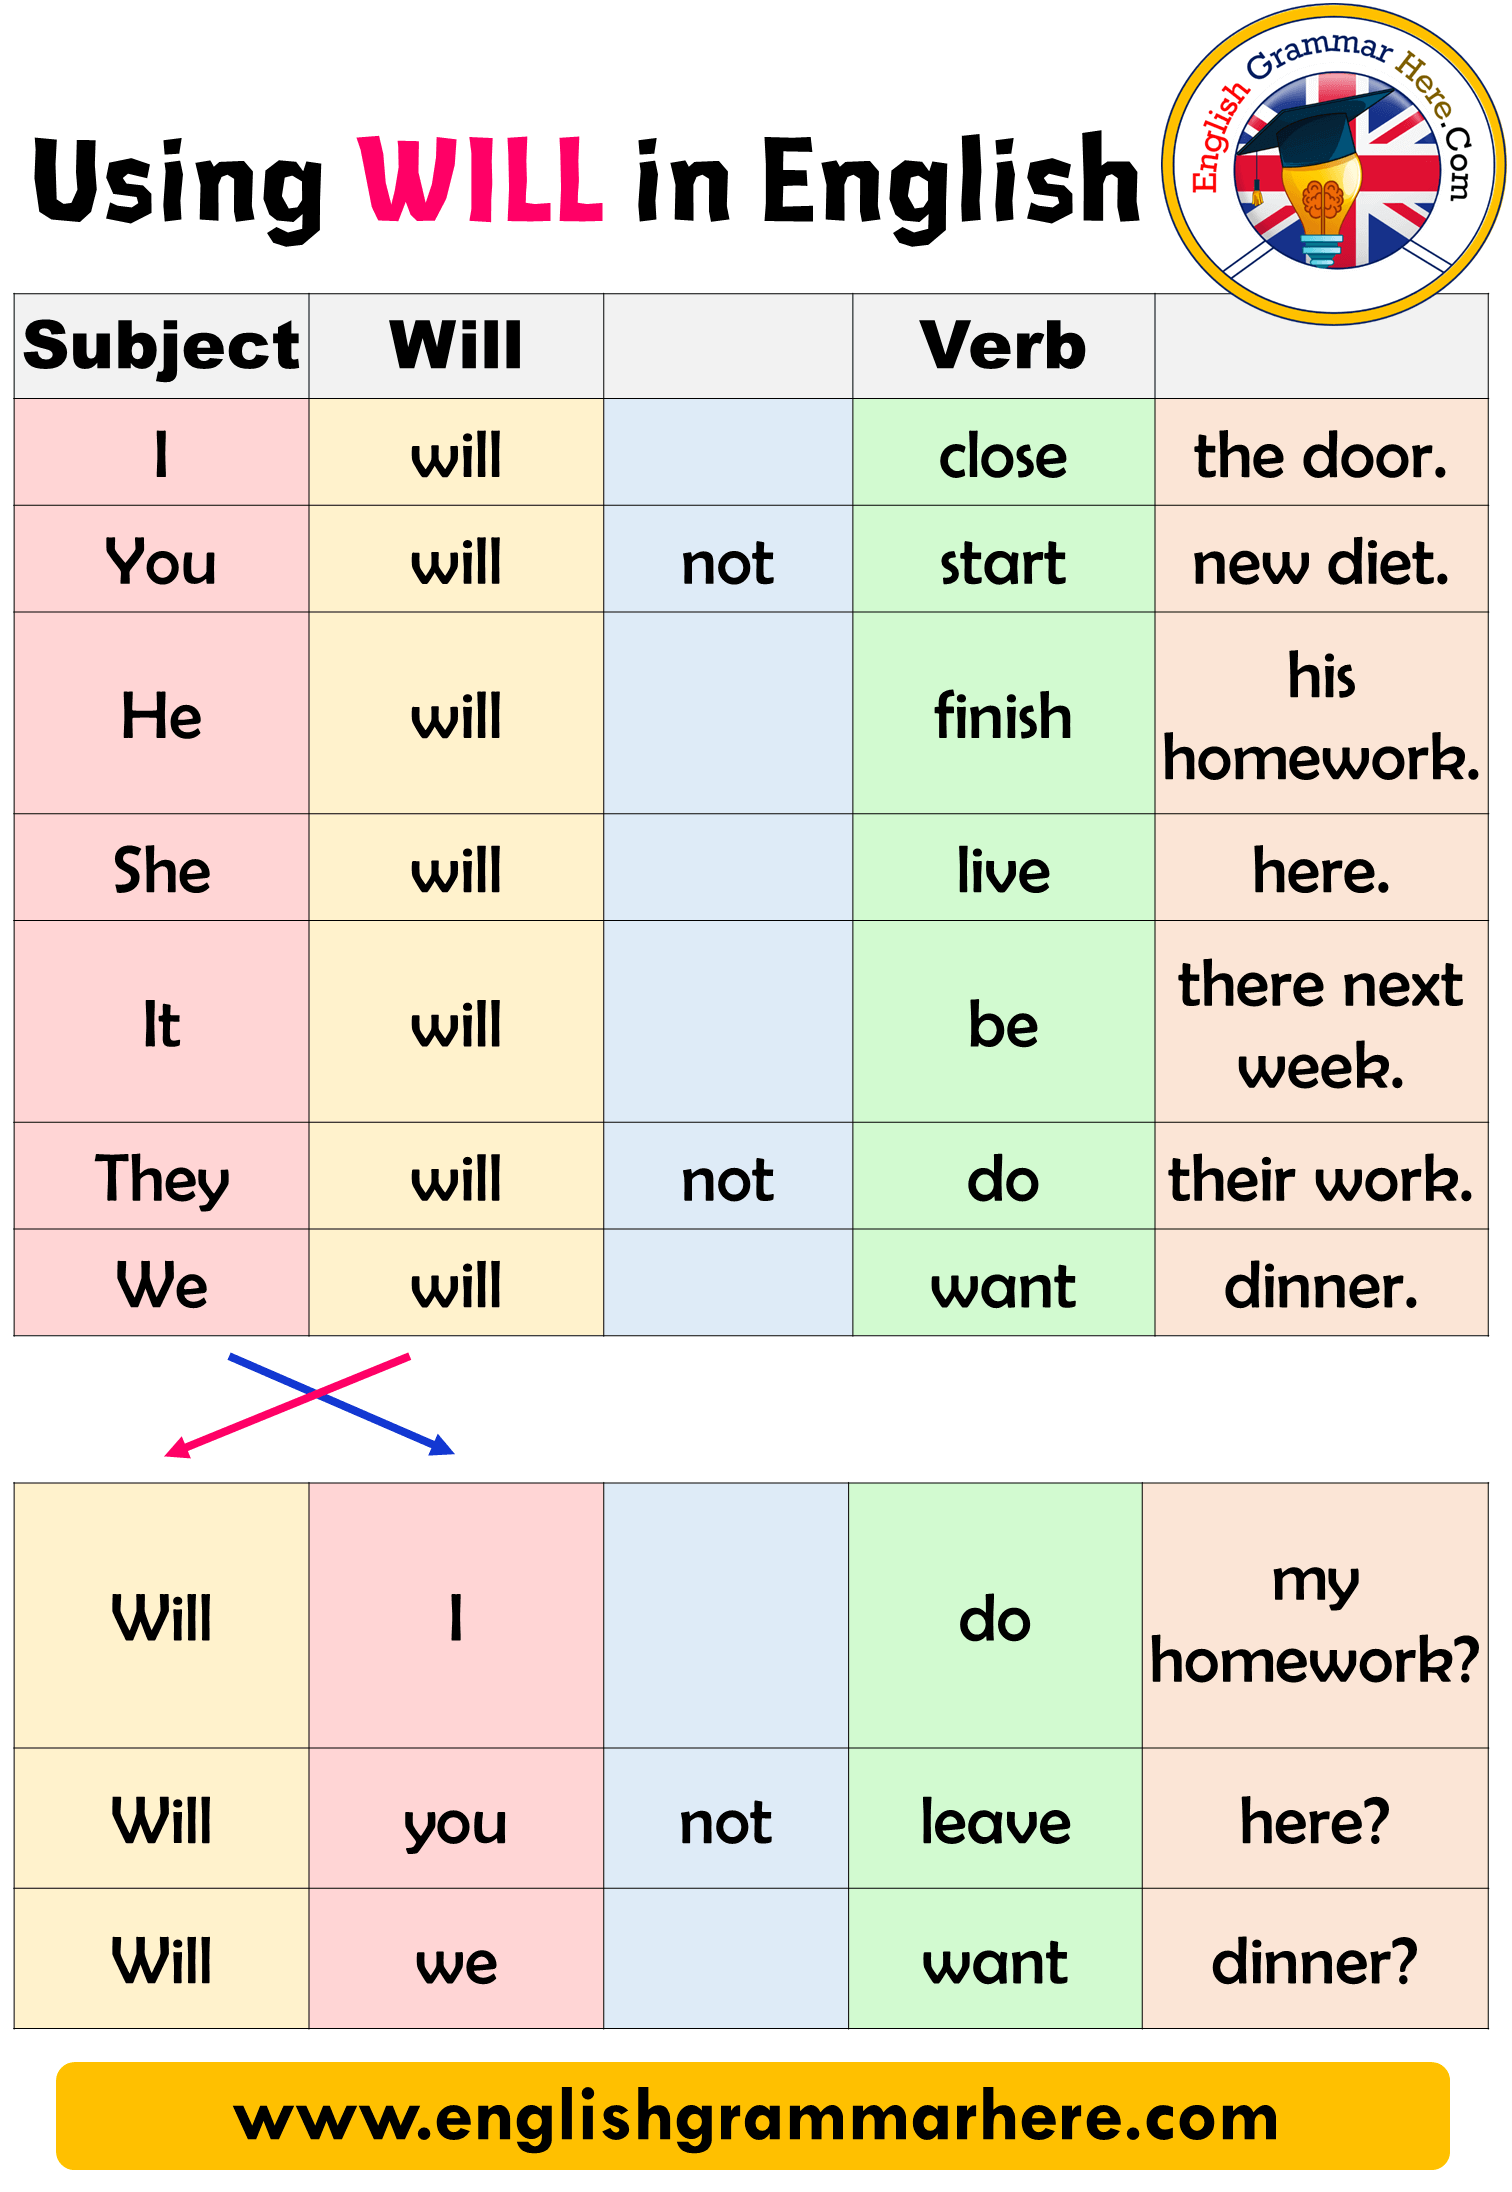 Using WILL in English